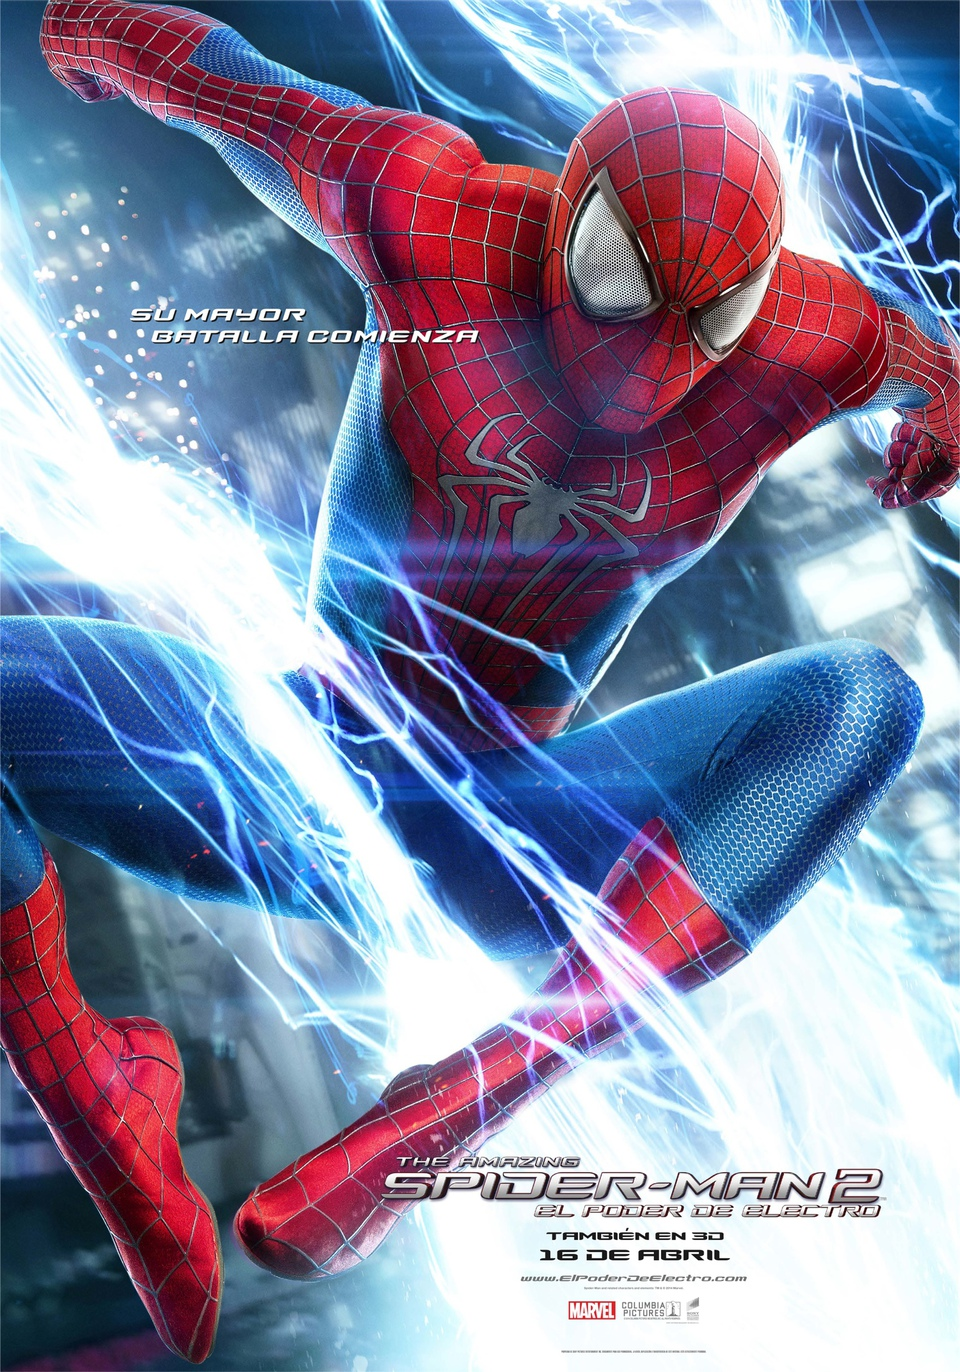 THE AMAZING SPIDER-MAN 2.EL PODER DE ELECTRO